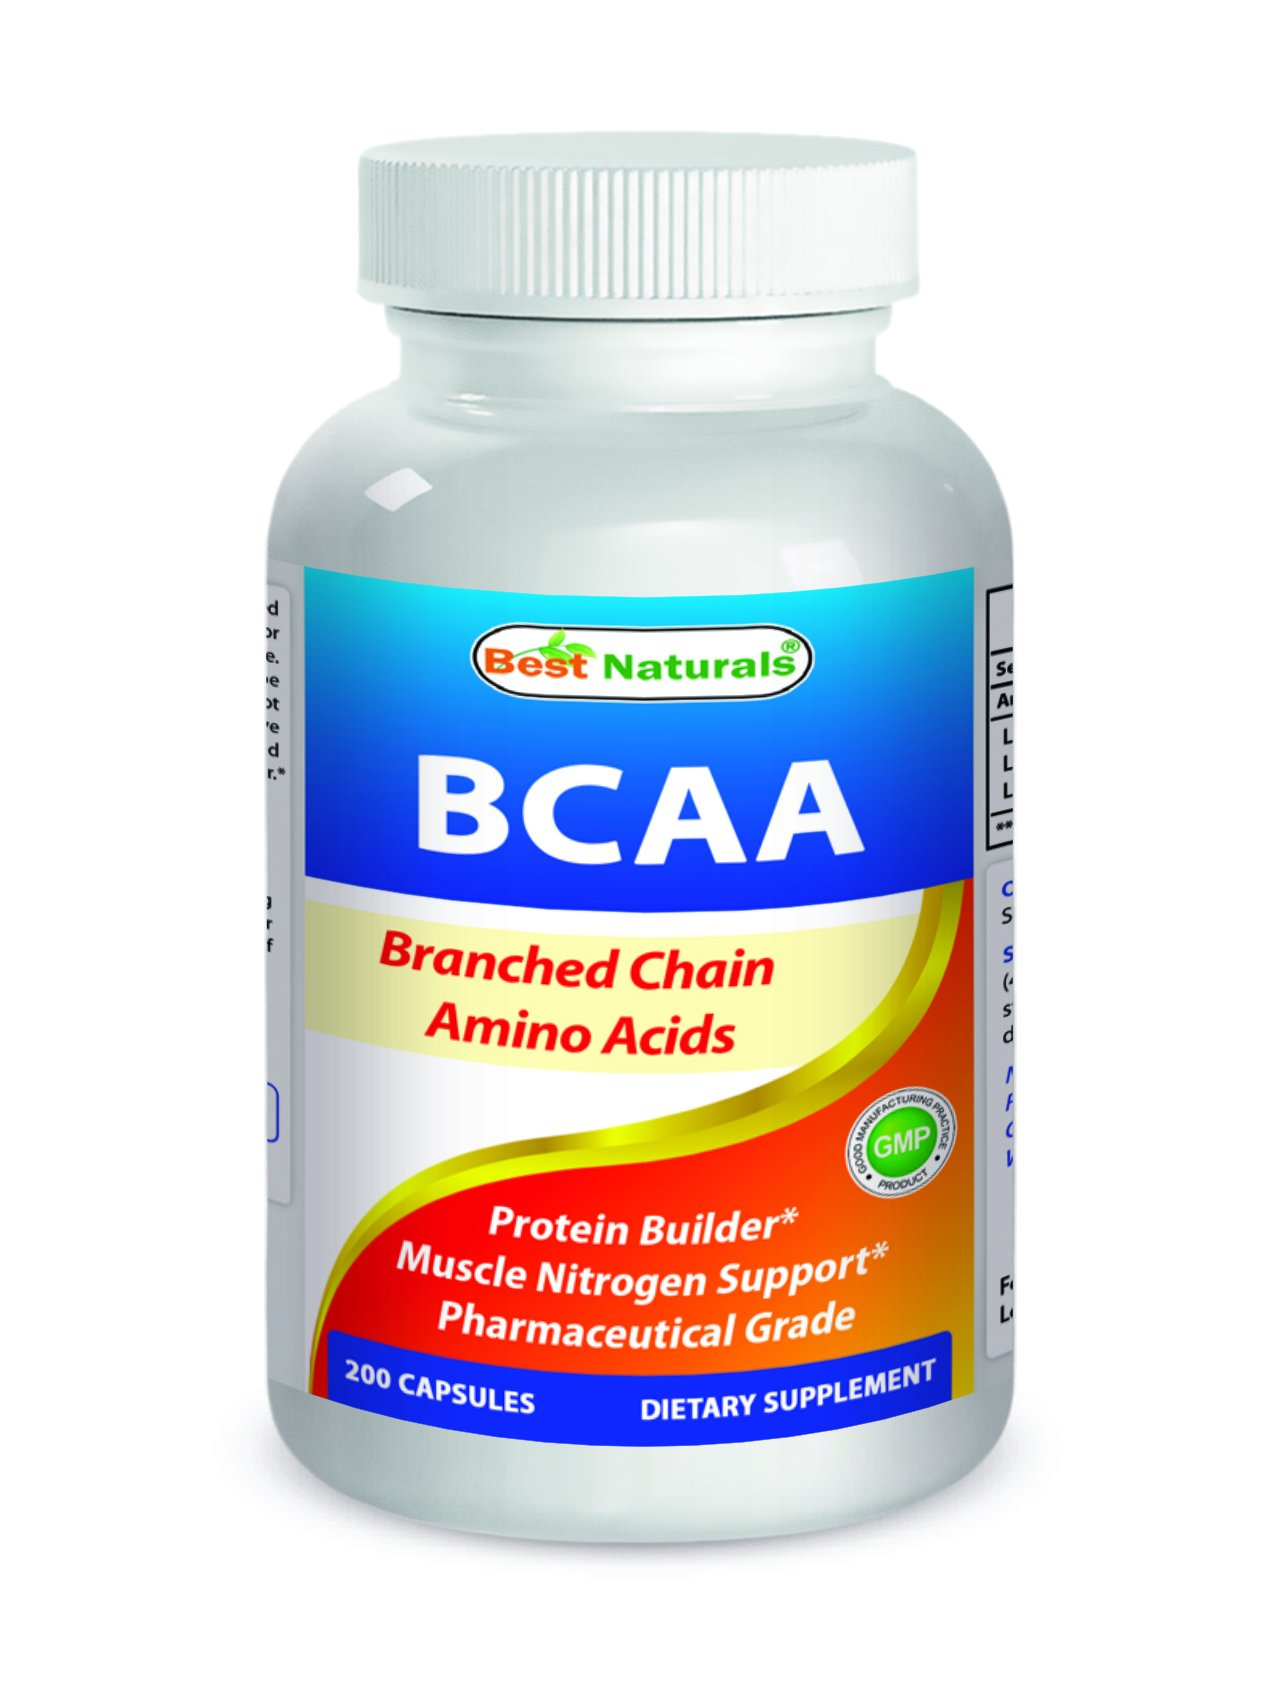 Best Naturals BCAA Branch Chain Amino Acid, 3200mg per serving, 200 Capsules - Pharmaceutical Grade - 100% Pure Instantized Formula | Pre/Post Workout Bodybuilding Supplement | Boost Muscle Growth